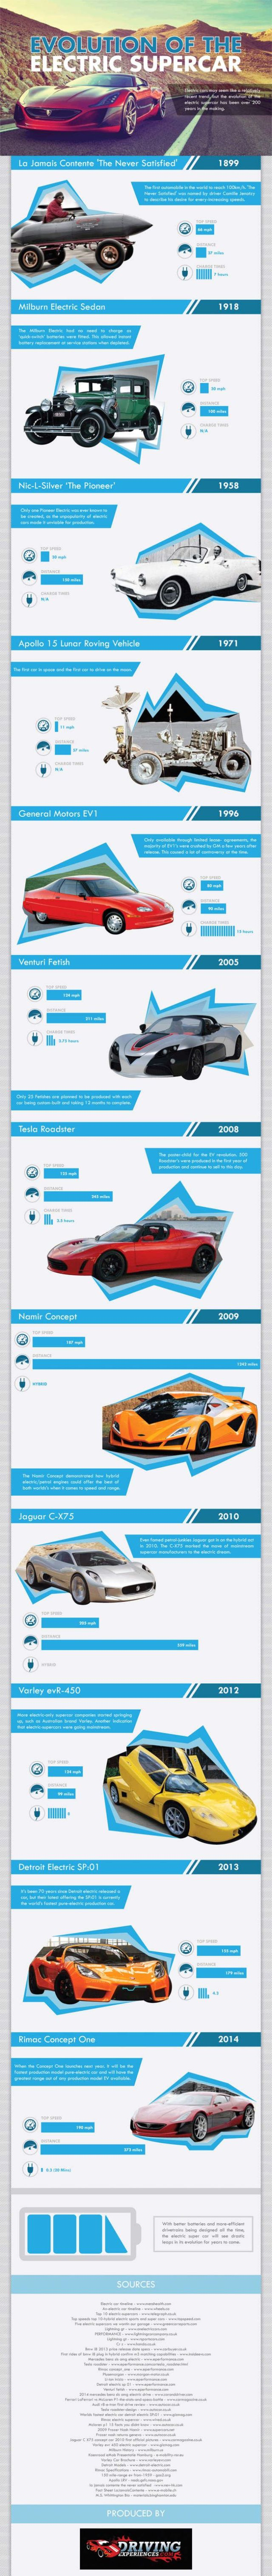 The evolution of the electric supercar